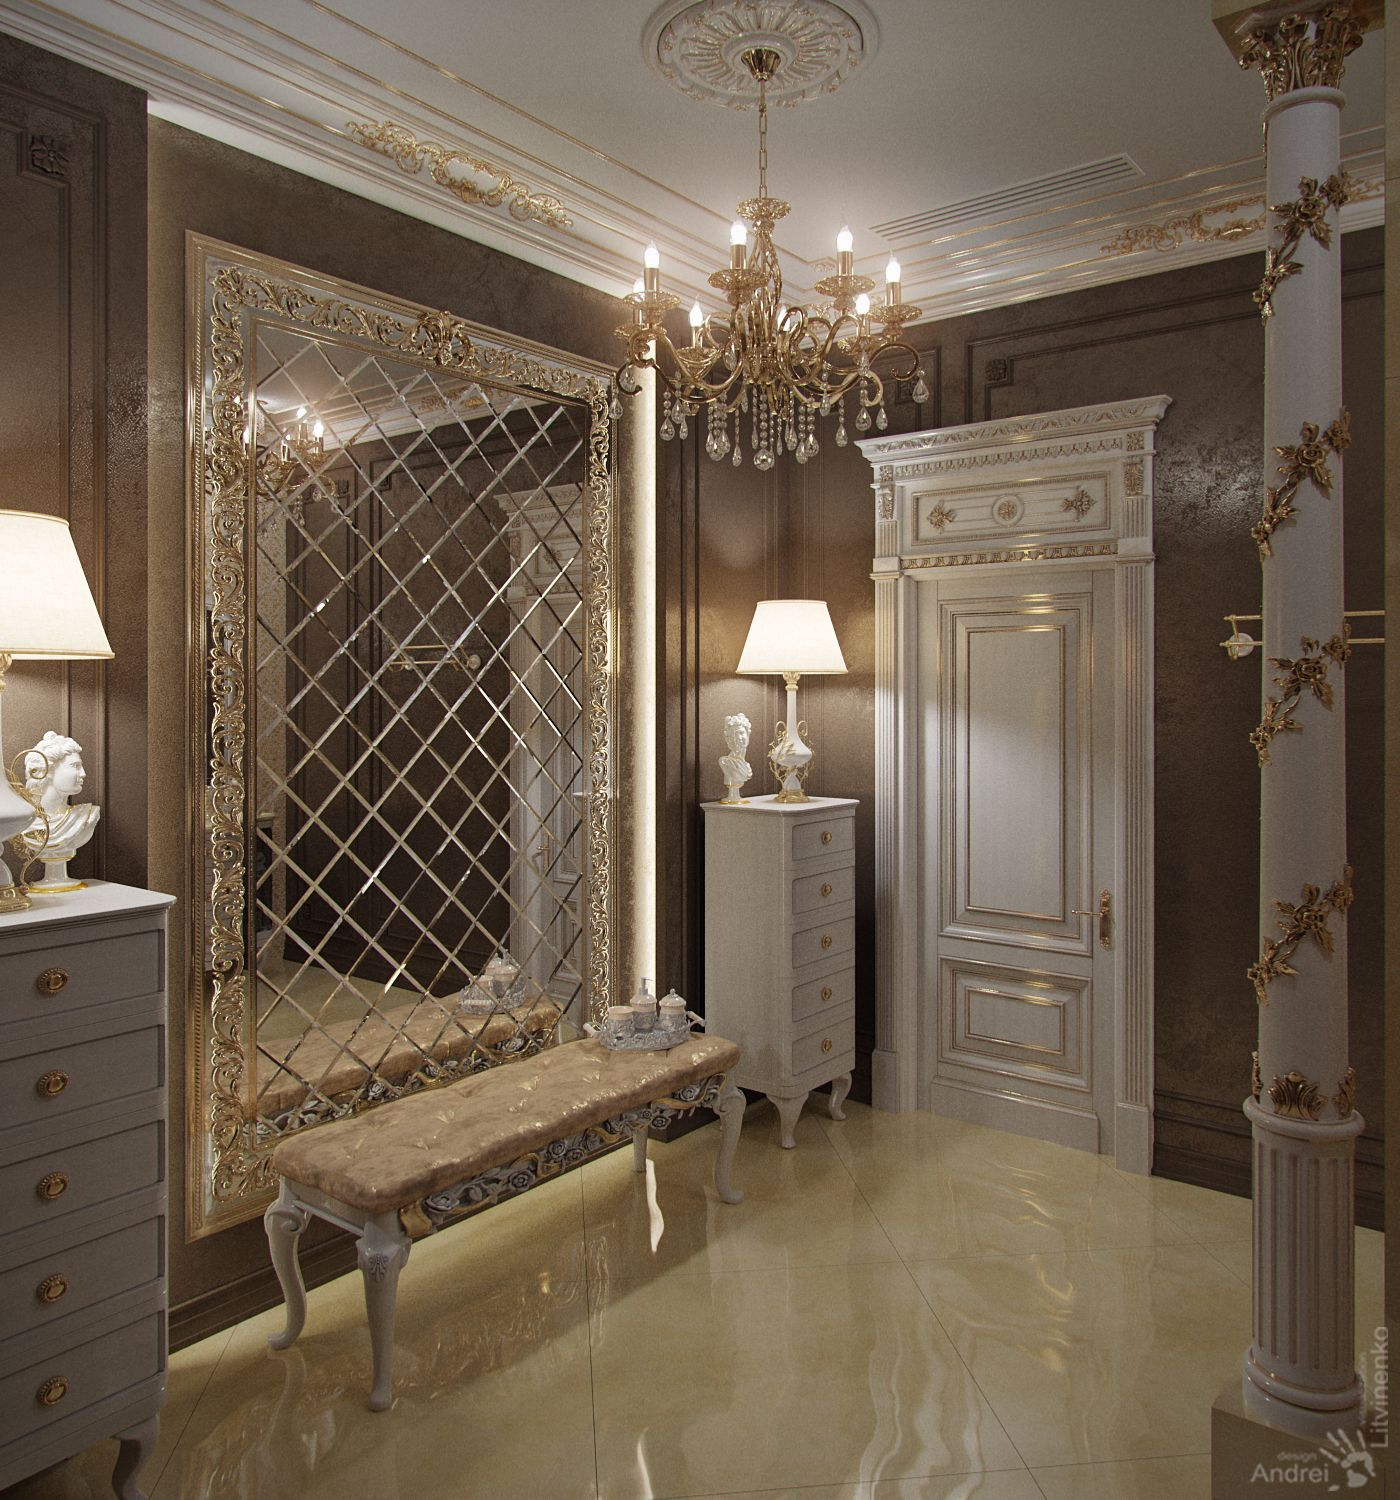 10 Adorable Round Wall Mirror Chandeliers Ideas Home Interior Design Living Room Mirrors Home